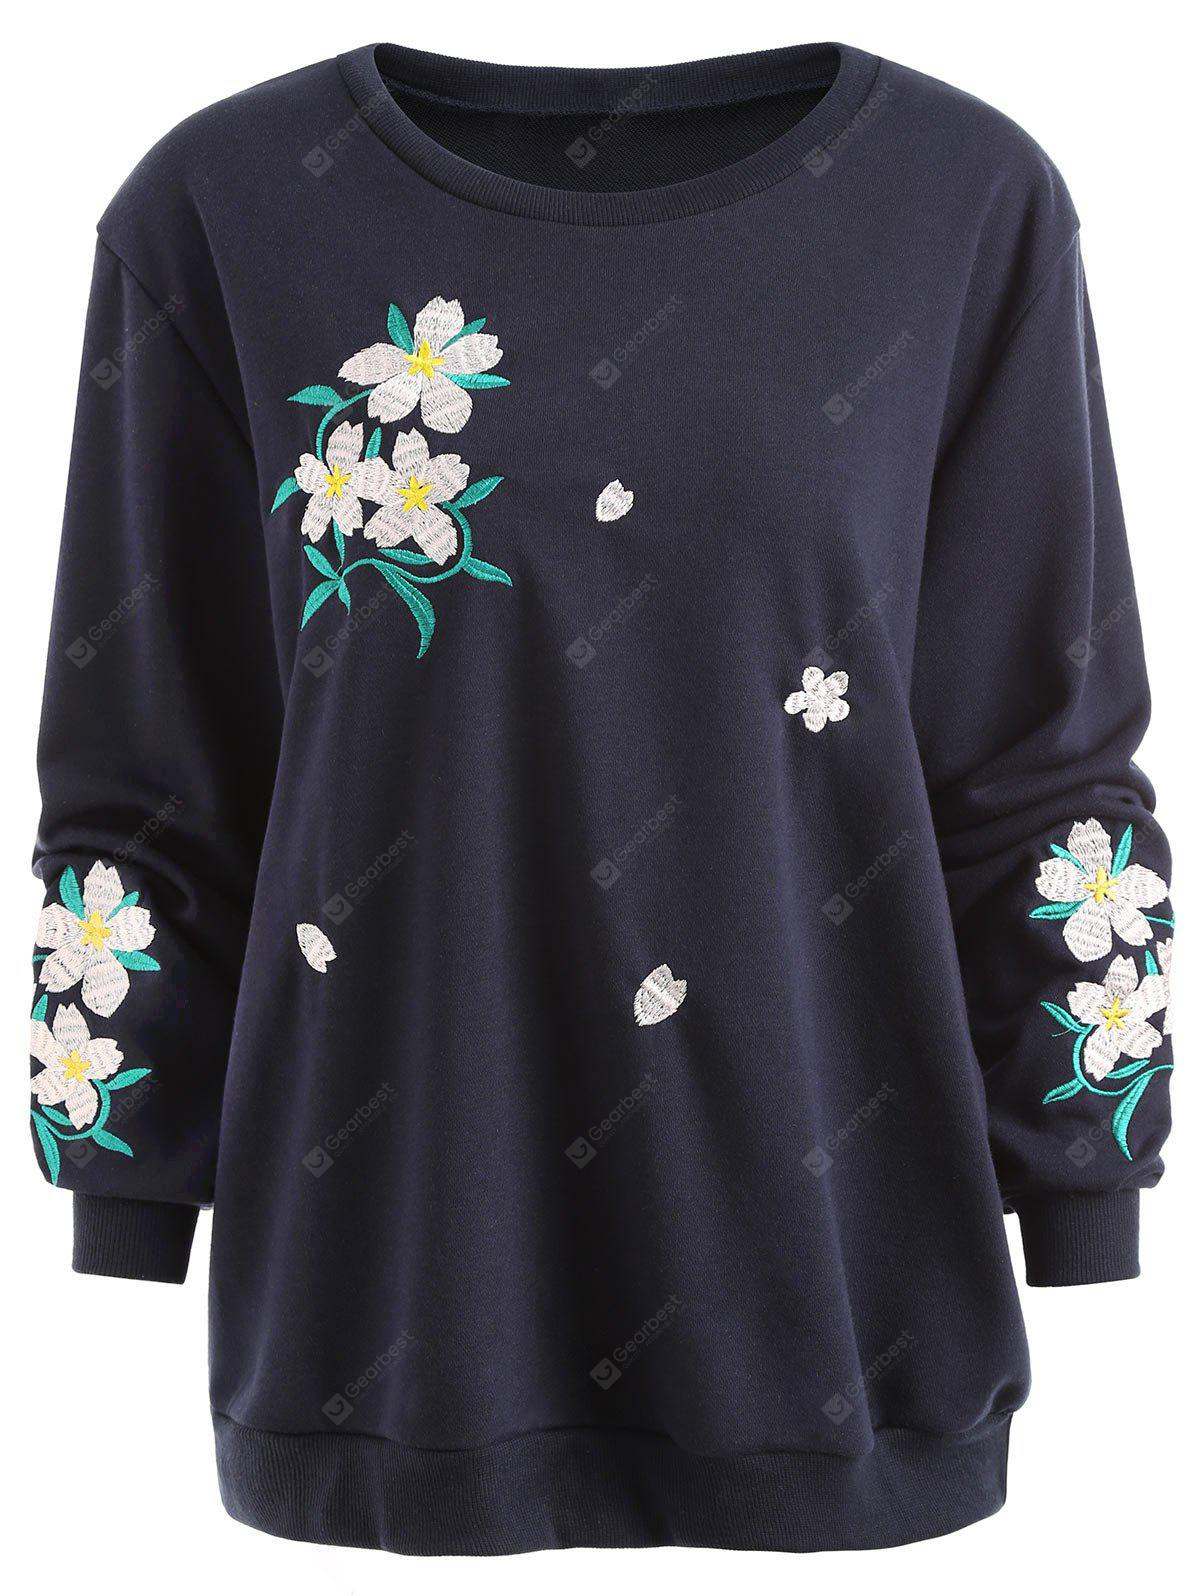 Flower Embroidered Plus Size Sweatshirt